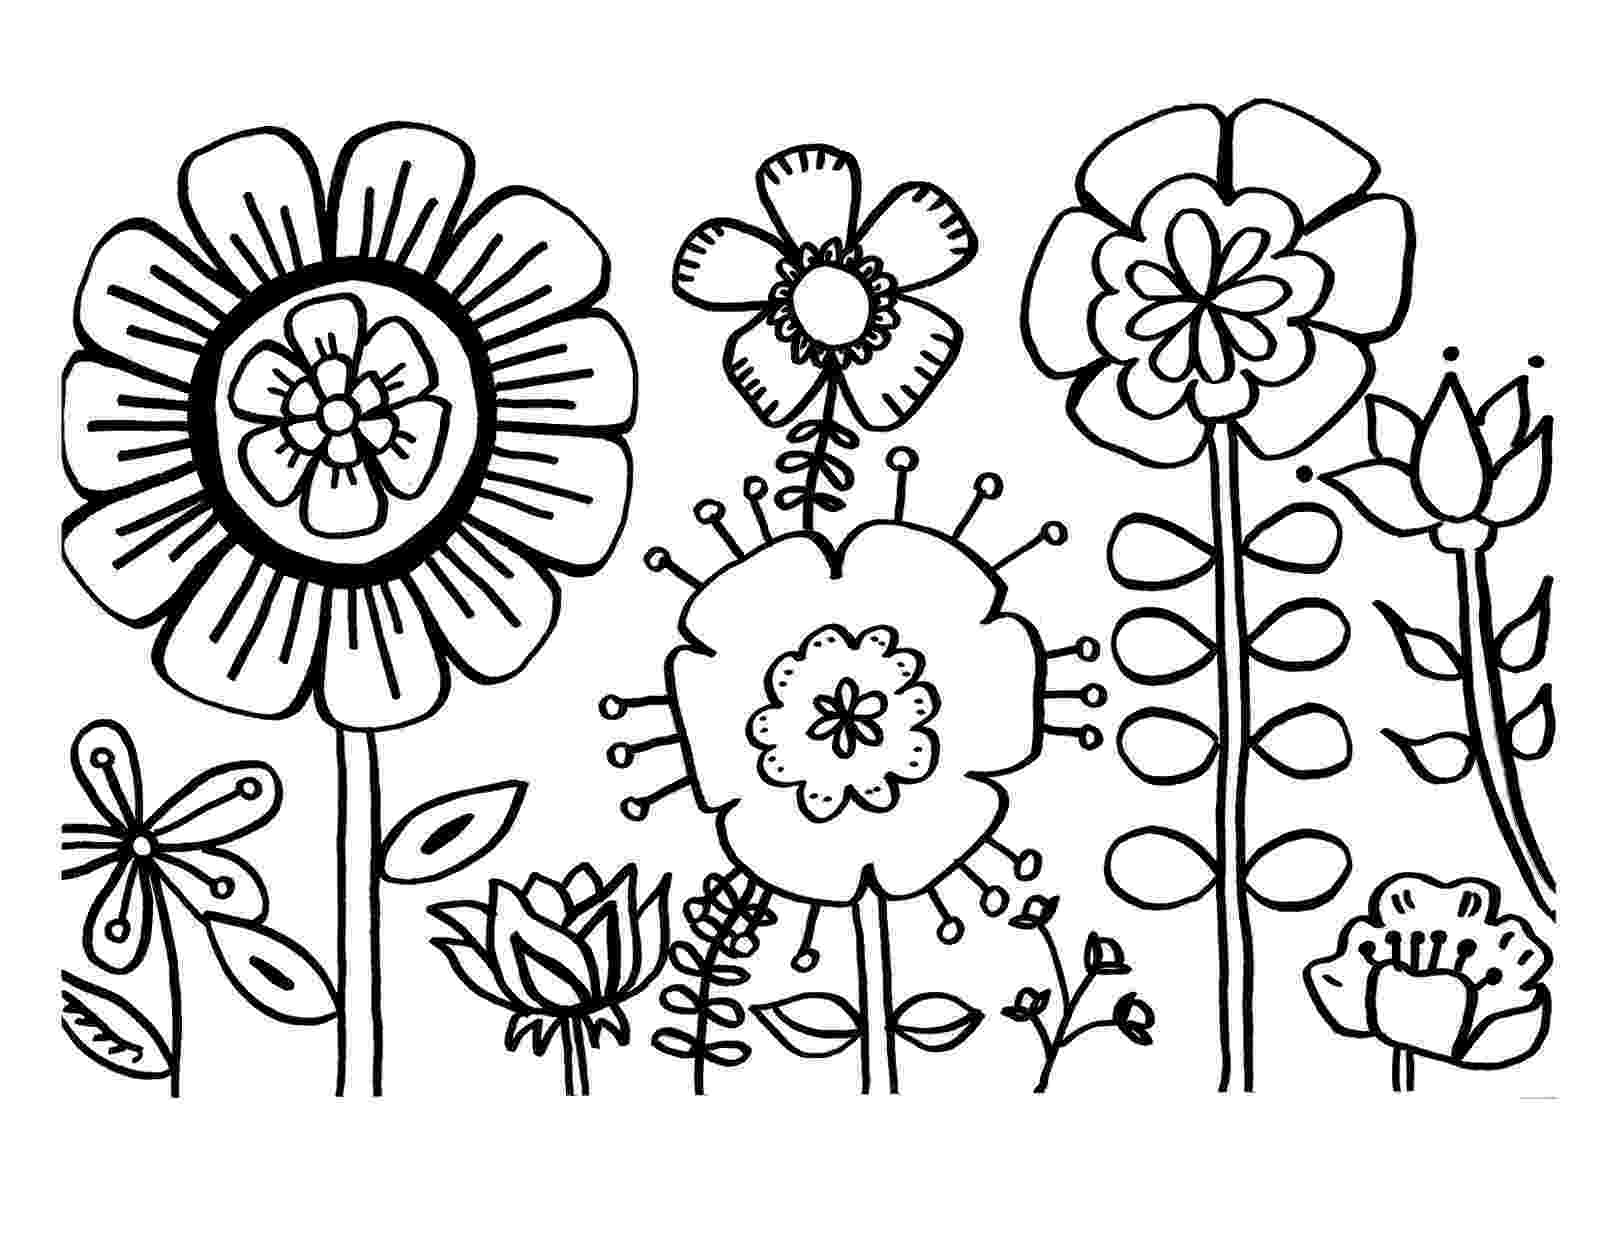 flower coloring pages printables free printable flower coloring pages for kids cool2bkids coloring printables flower pages